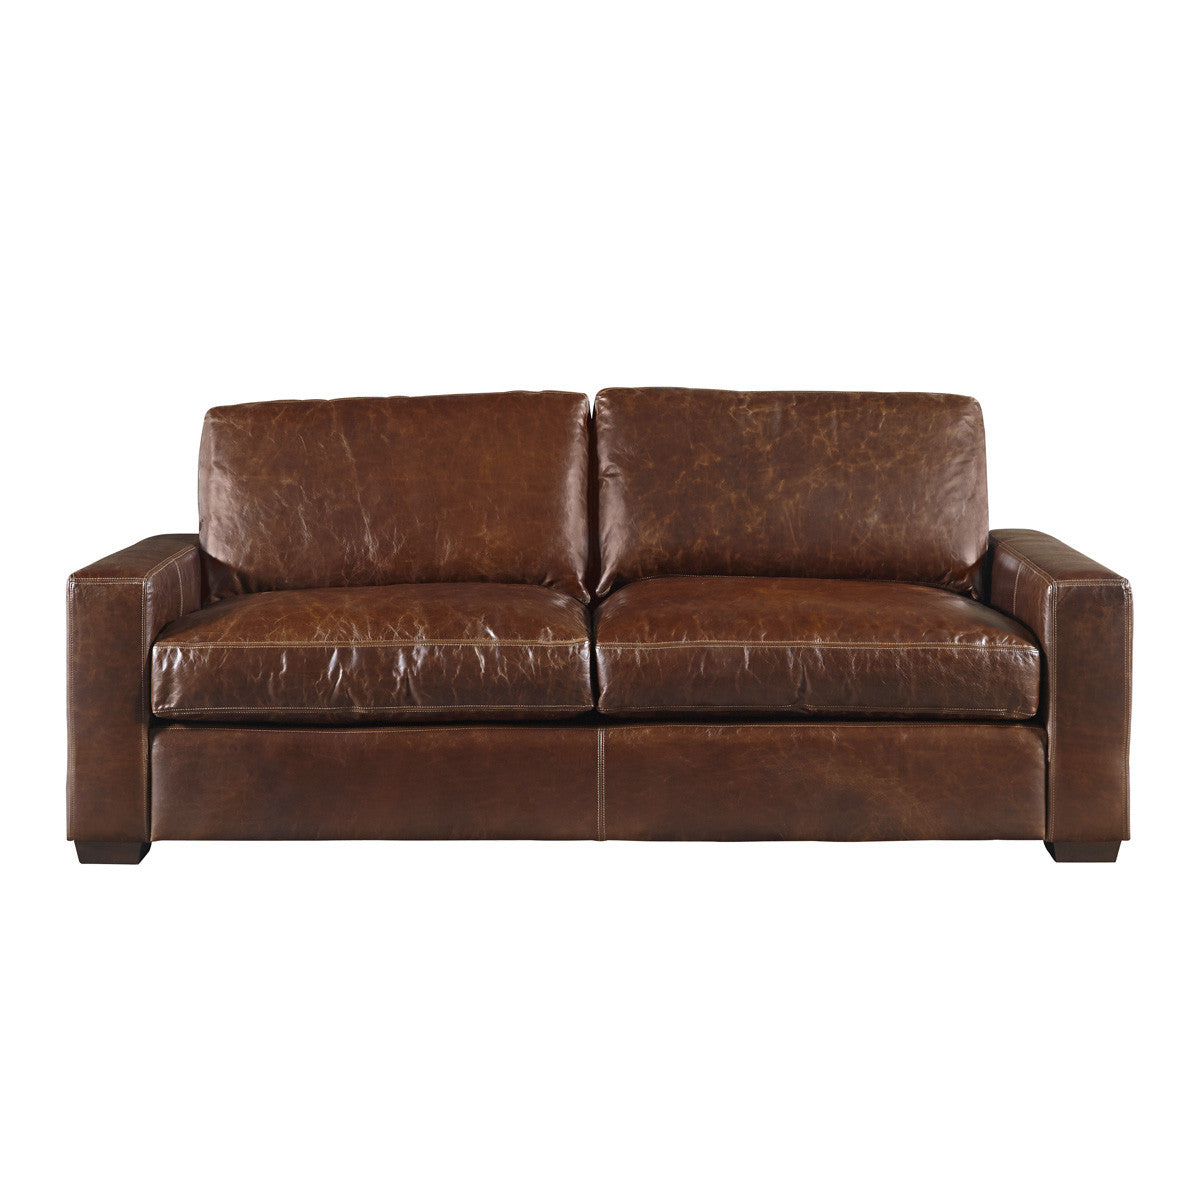 recliner bentley s loveseat set sets armchair leather sofa and